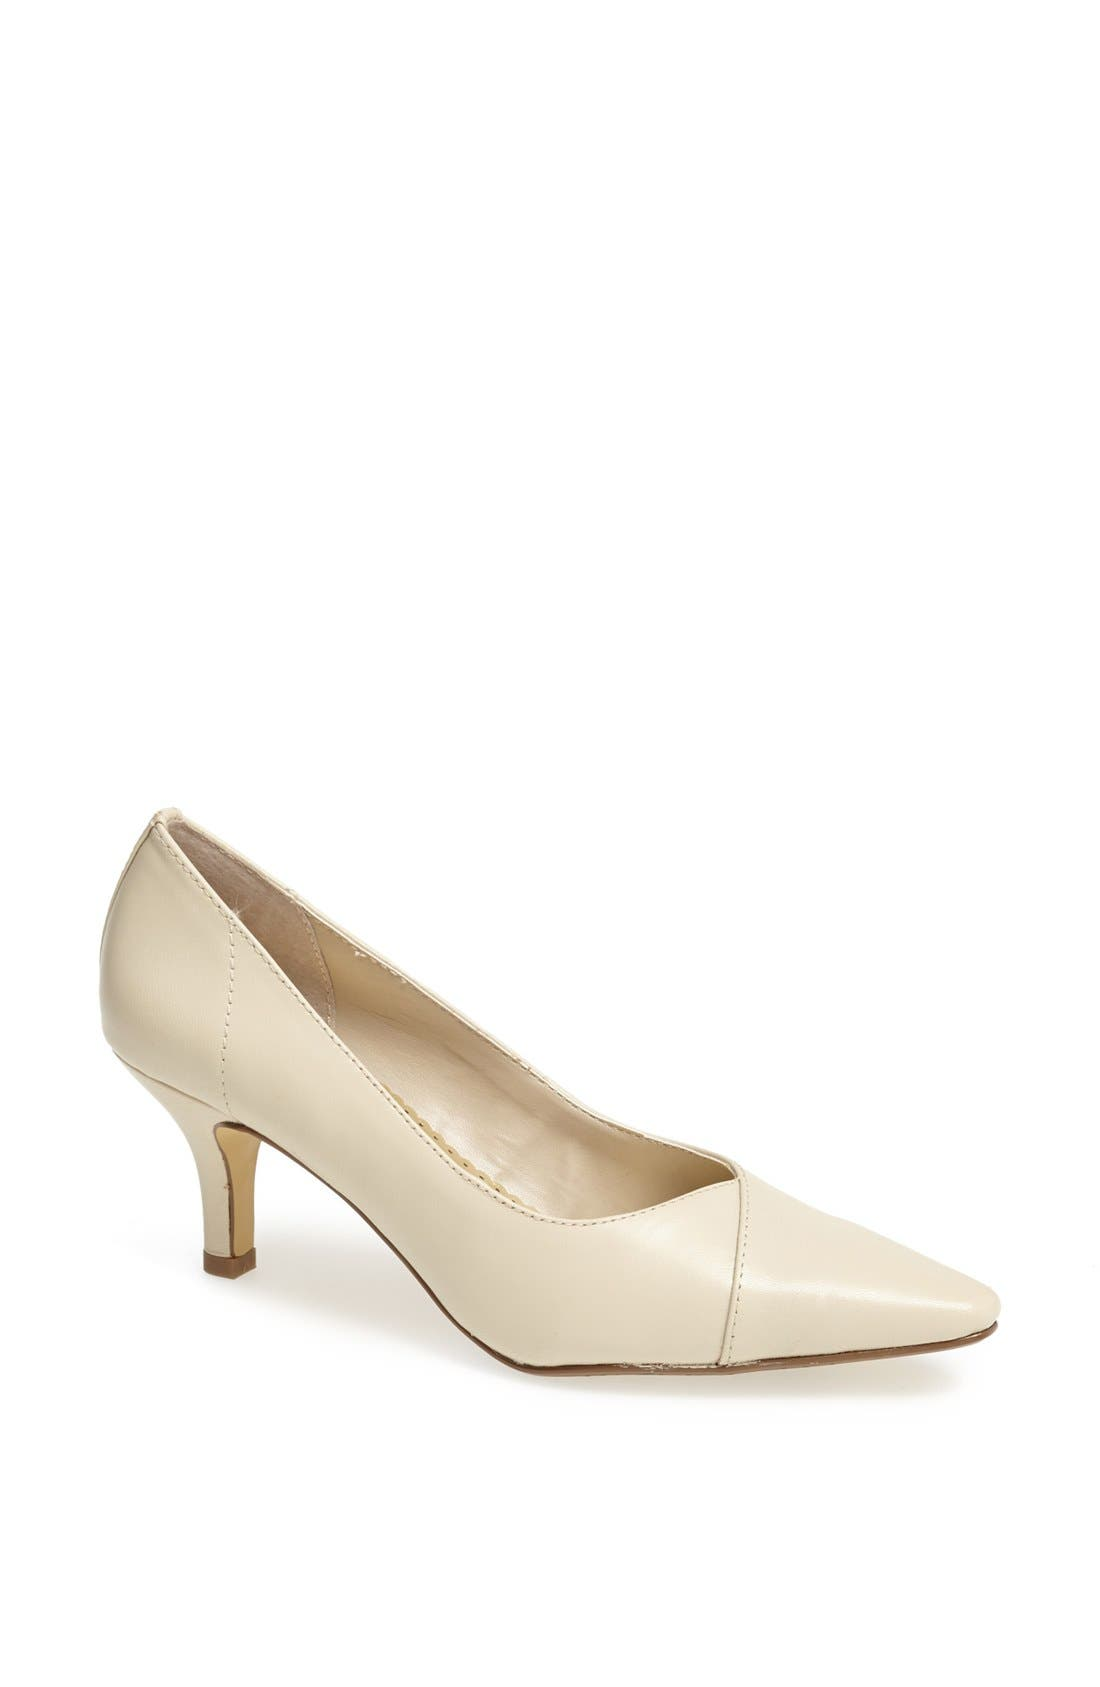 'Wow' Kitten Heel Pump,                         Main,                         color, BONE